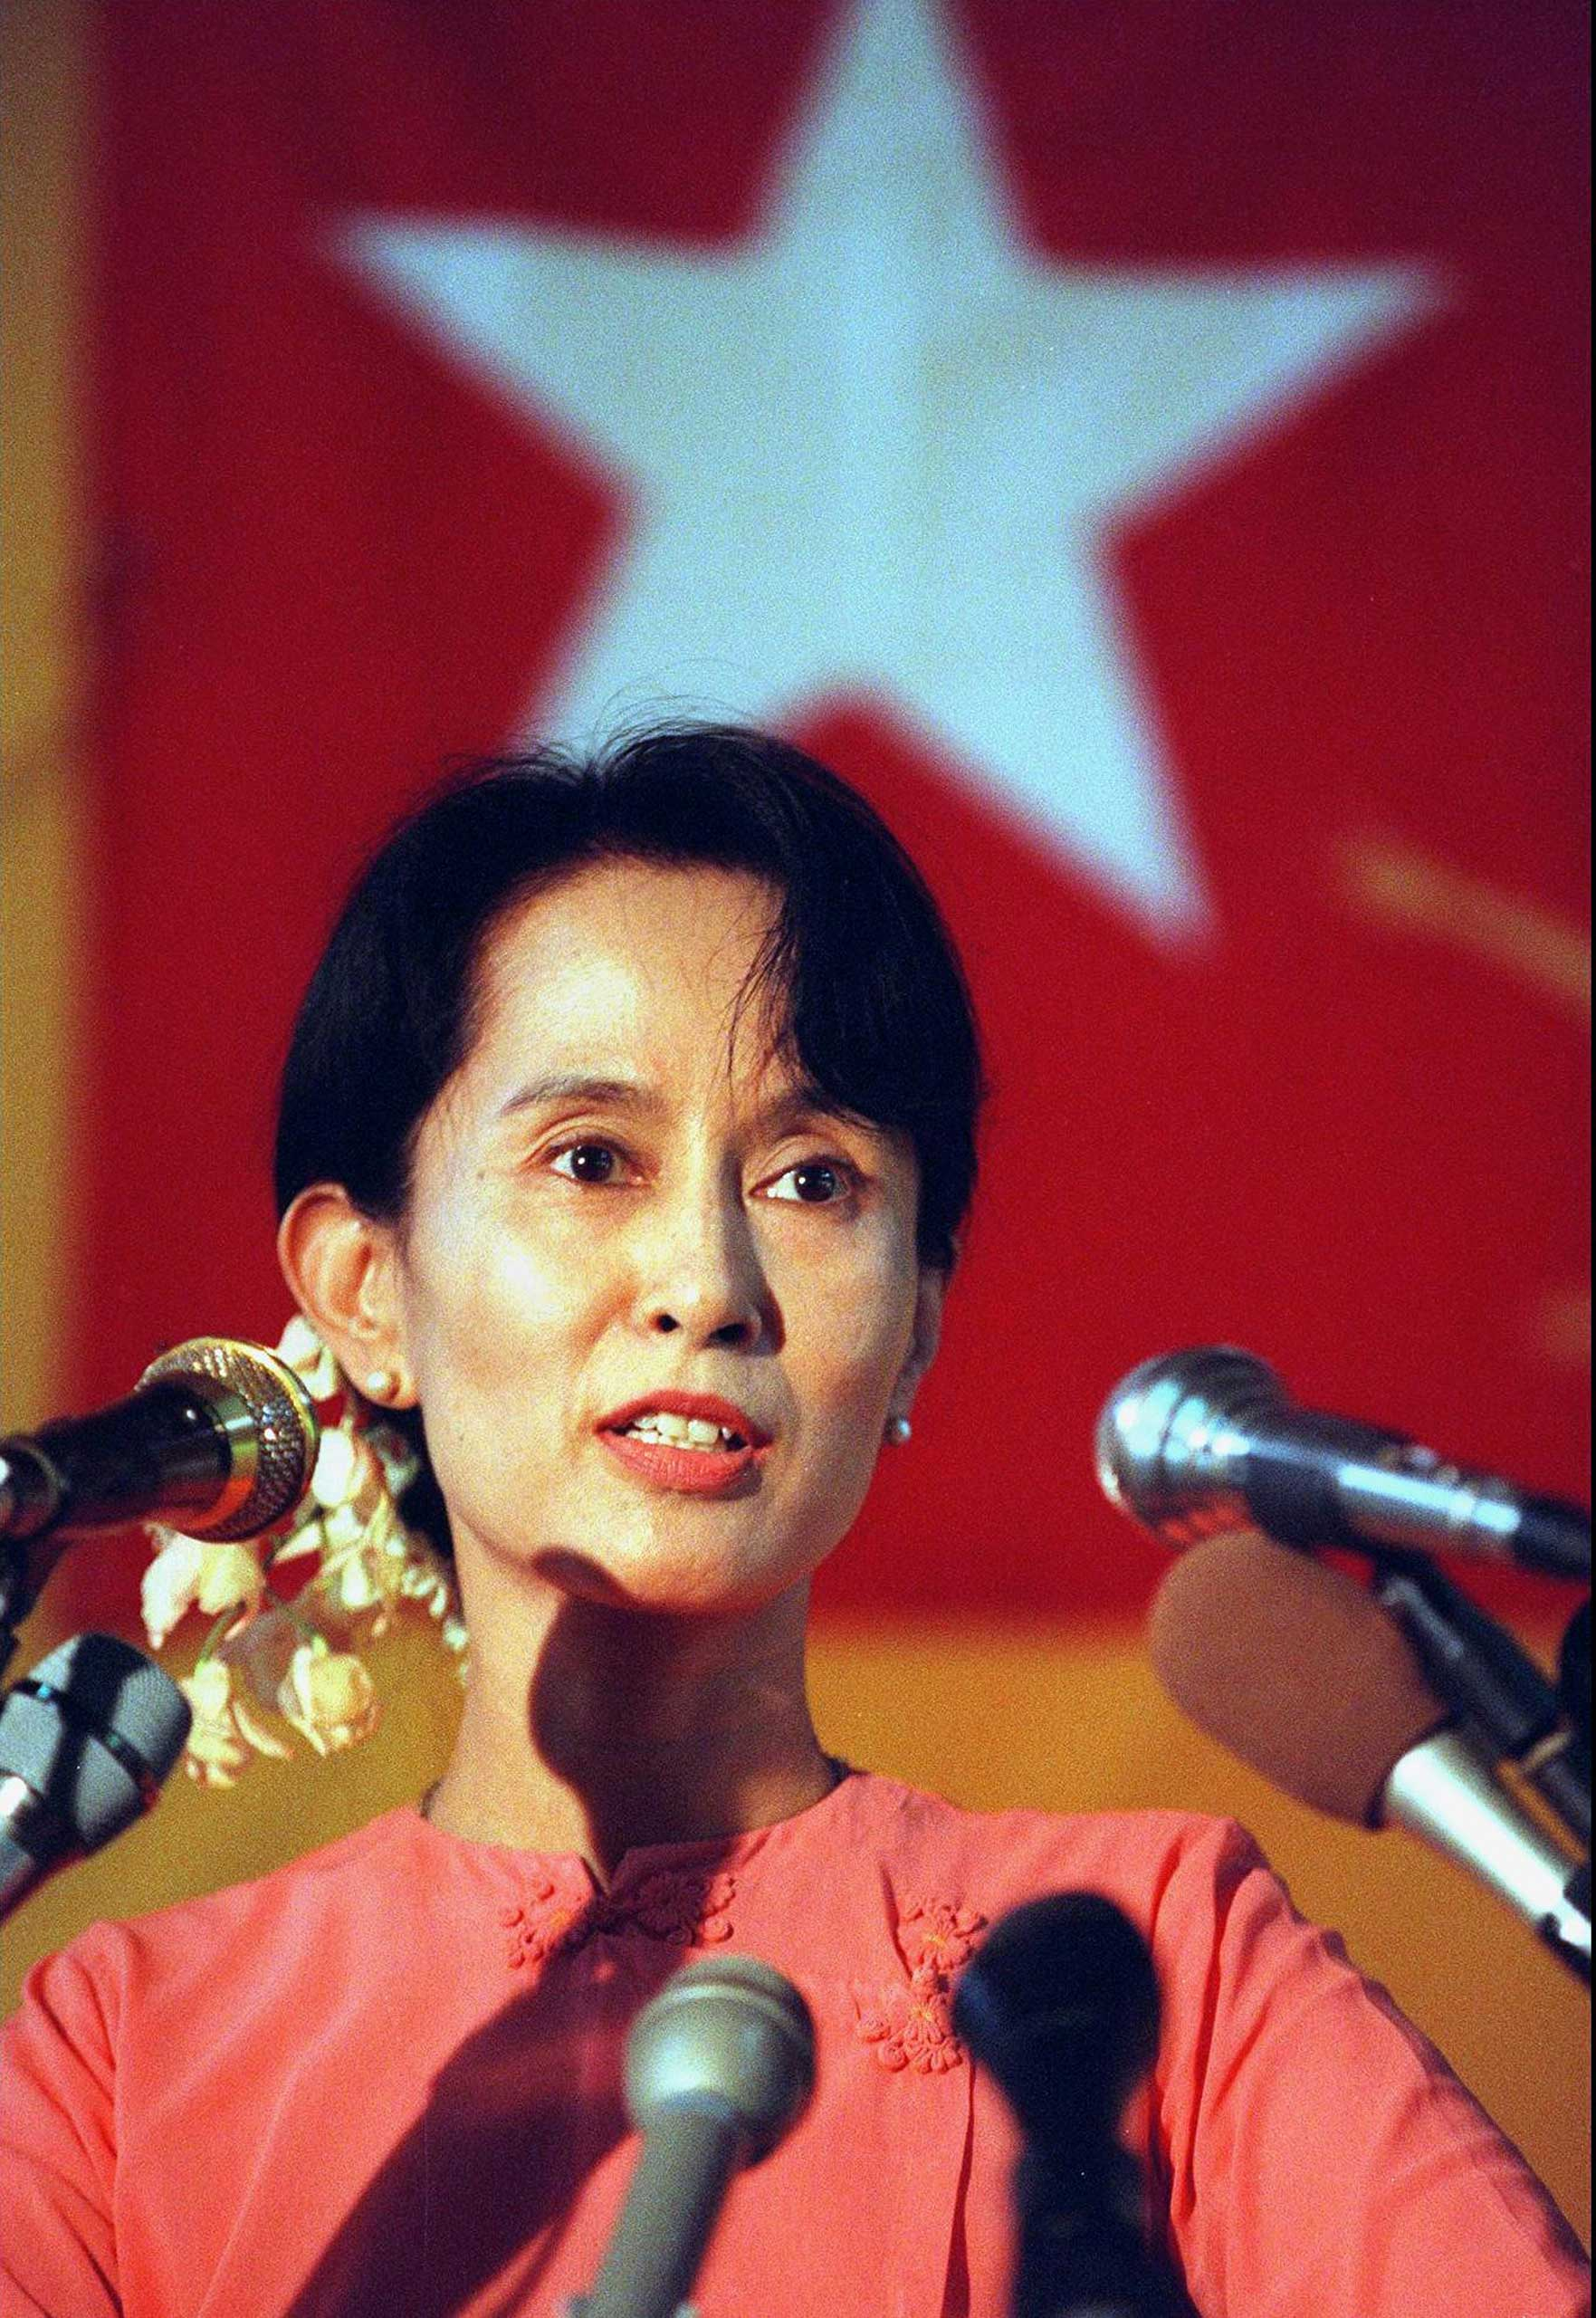 """<b>Aung San Suu Kyi, 1991</b>""""For her non-violent struggle for democracy and human rights"""""""